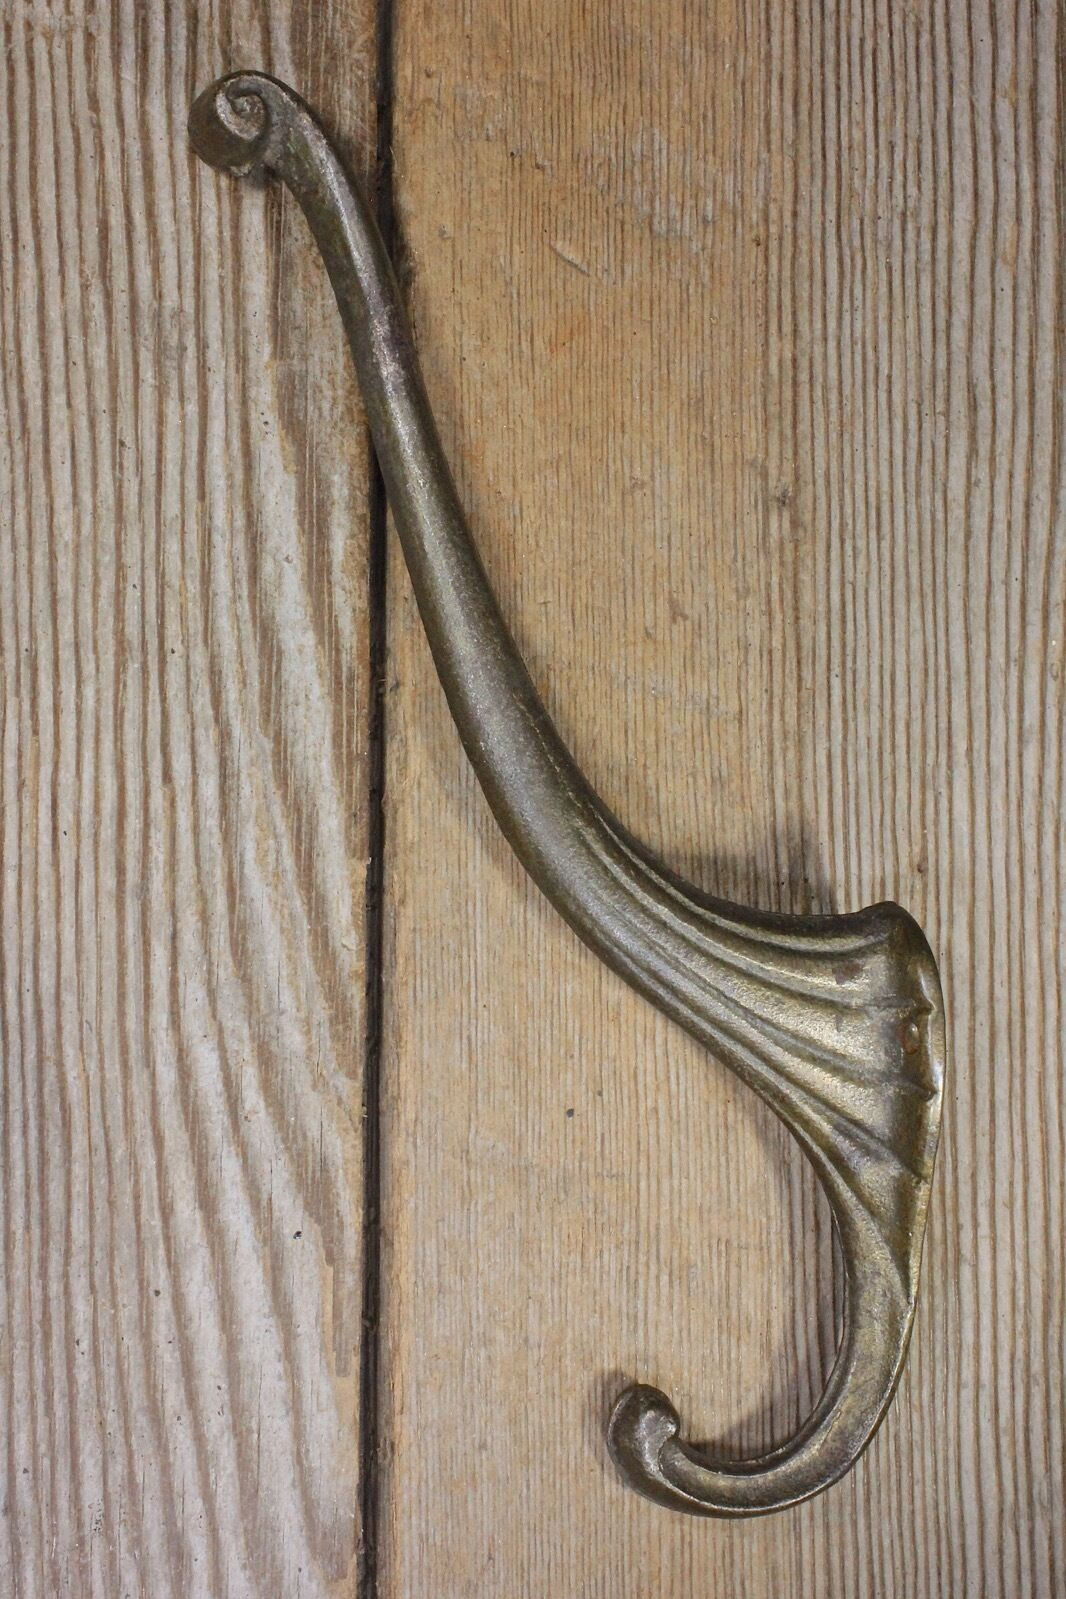 Coat Hook craftsman school house bath robe old rustic vintage brass clothes tree